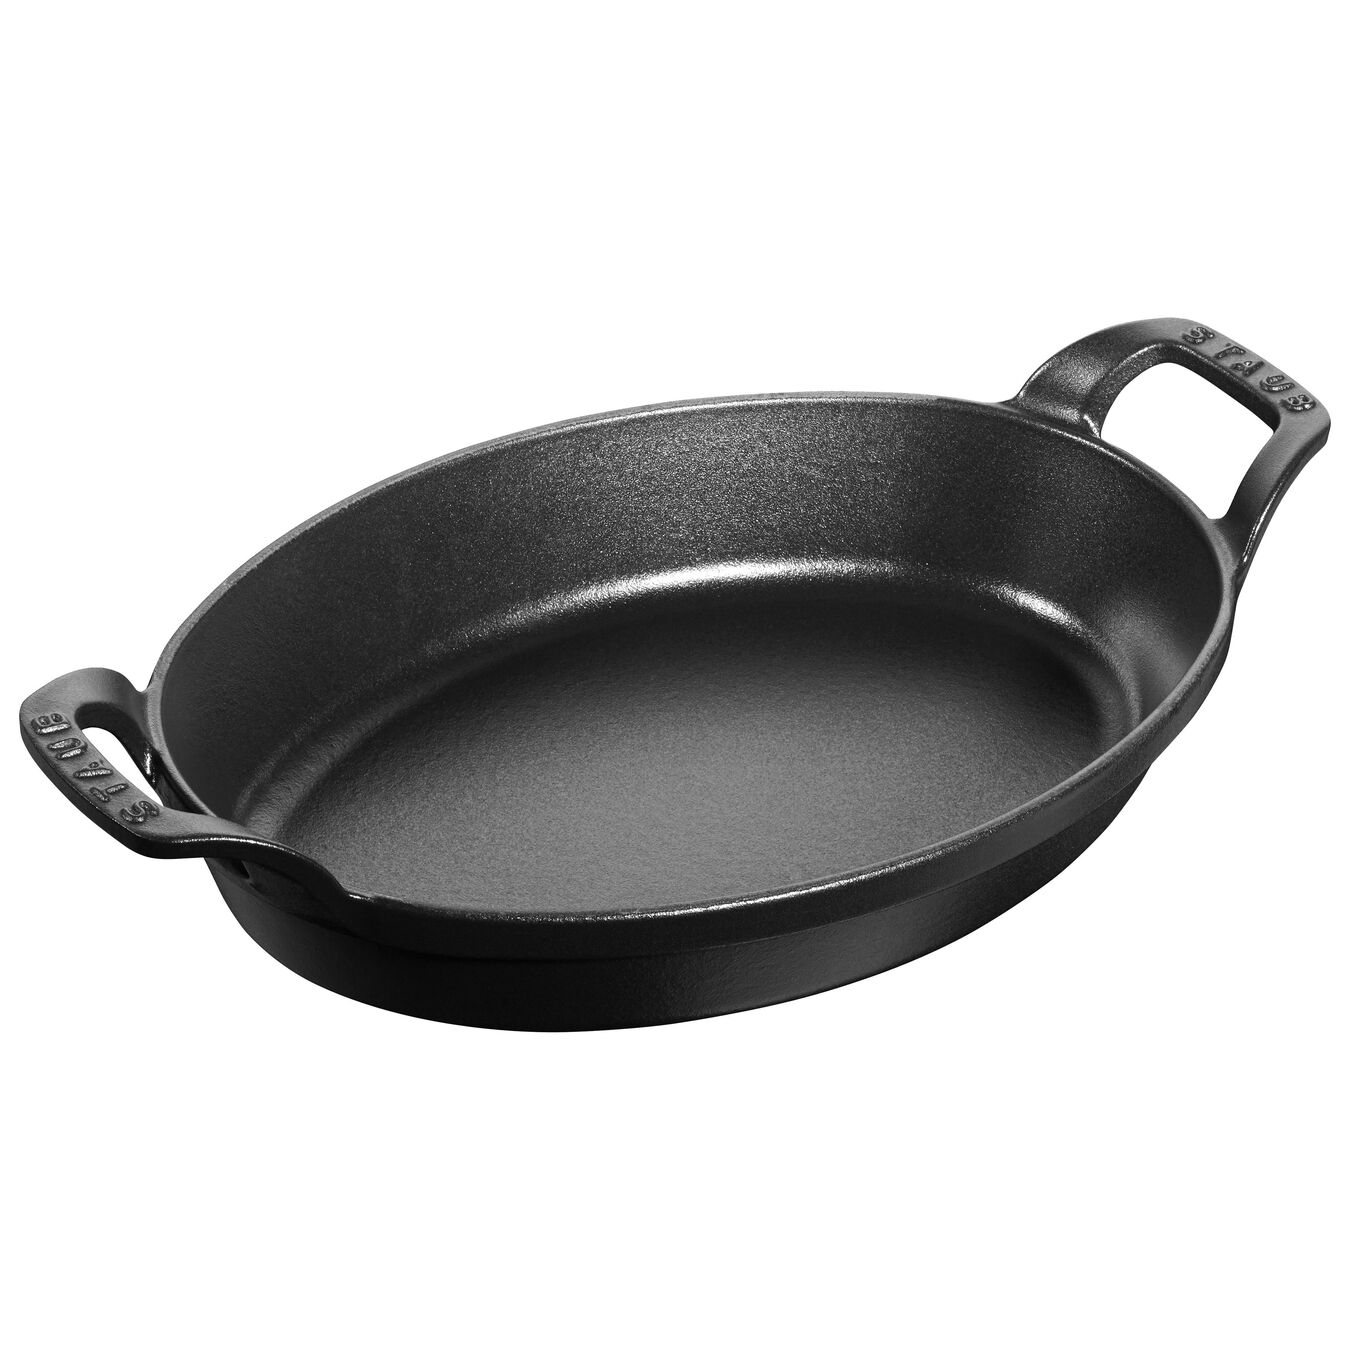 Cast iron oval Plat empilable, Black,,large 1